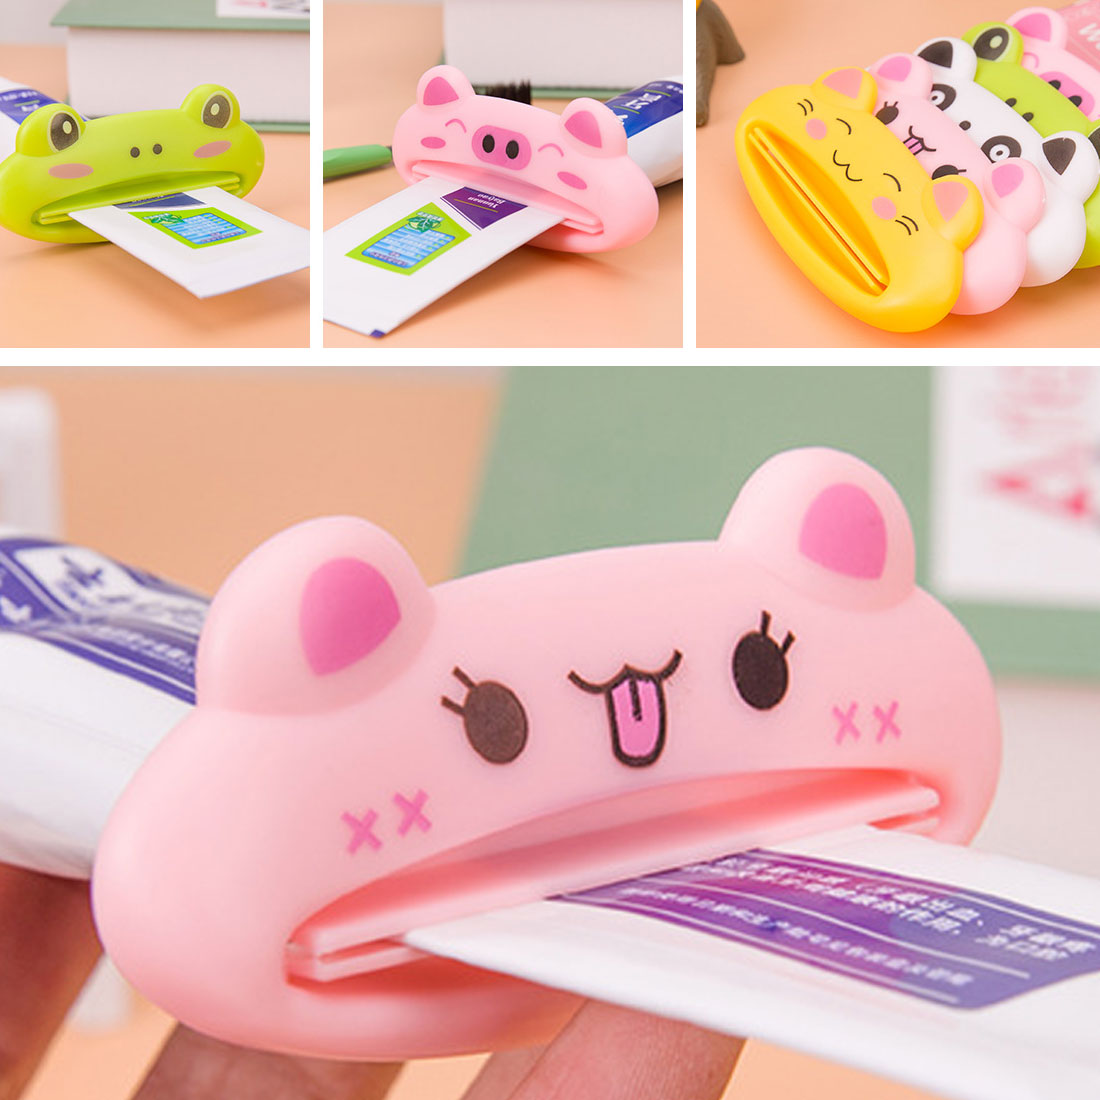 Toothpaste Dispenser Cute Cartoon Animal Multi function squeezer toothpaste squeezer Home Commodity Bathroom Products